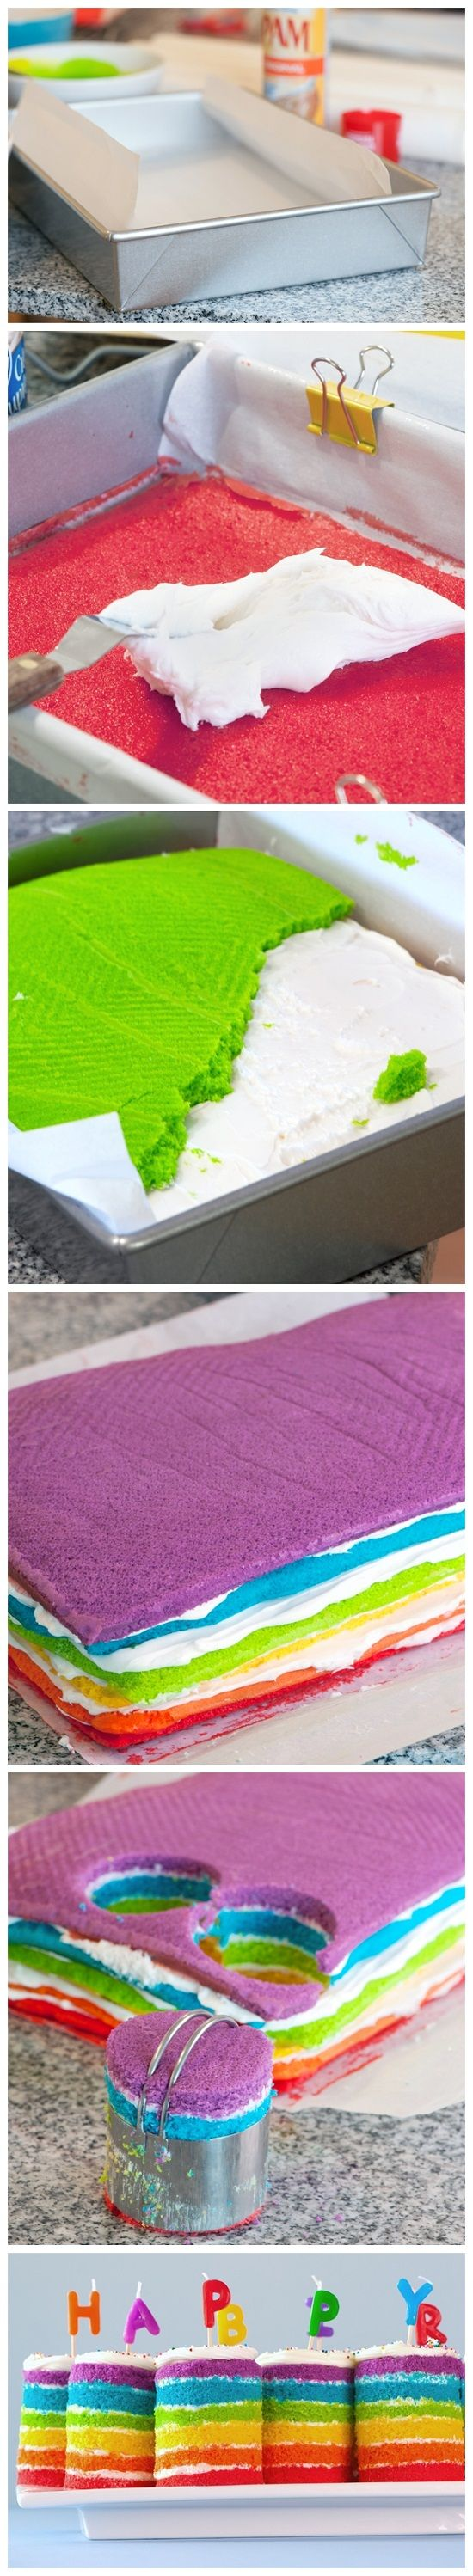 DIY : Colorful cakes